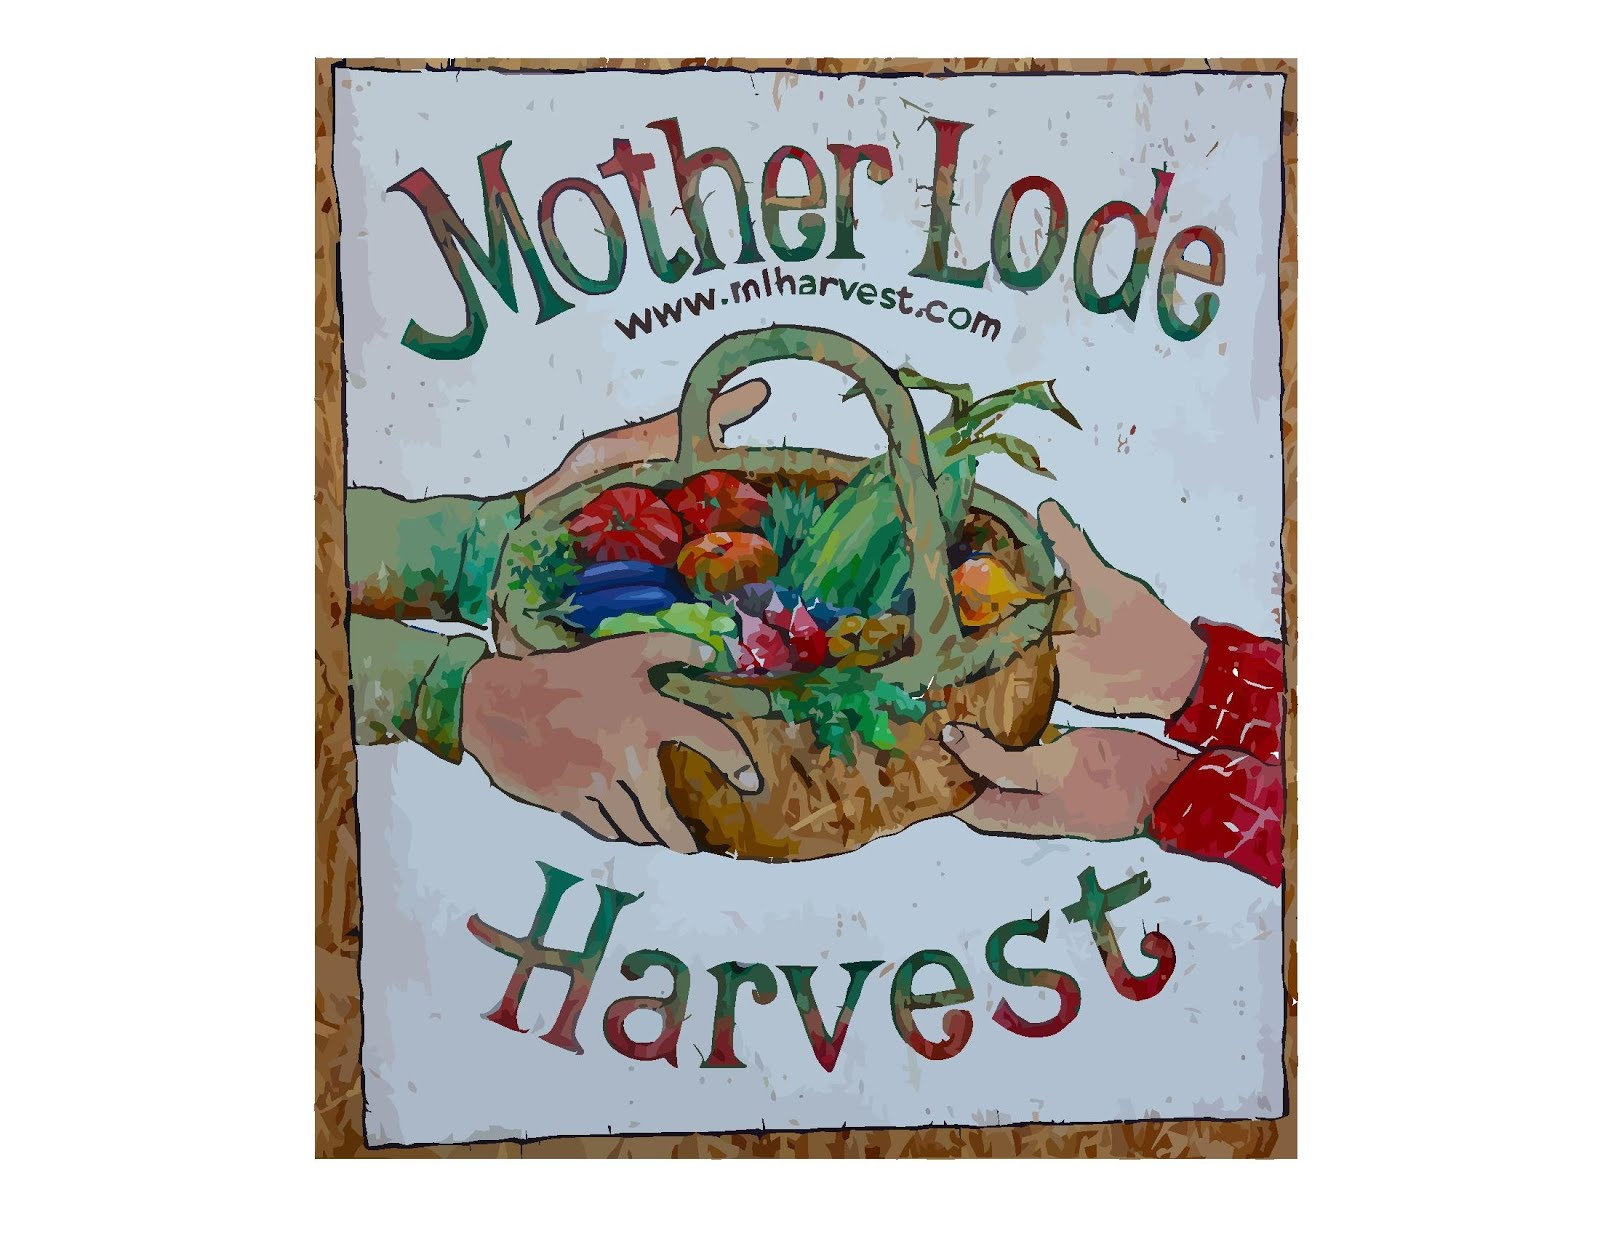 Mother Lode Harvest